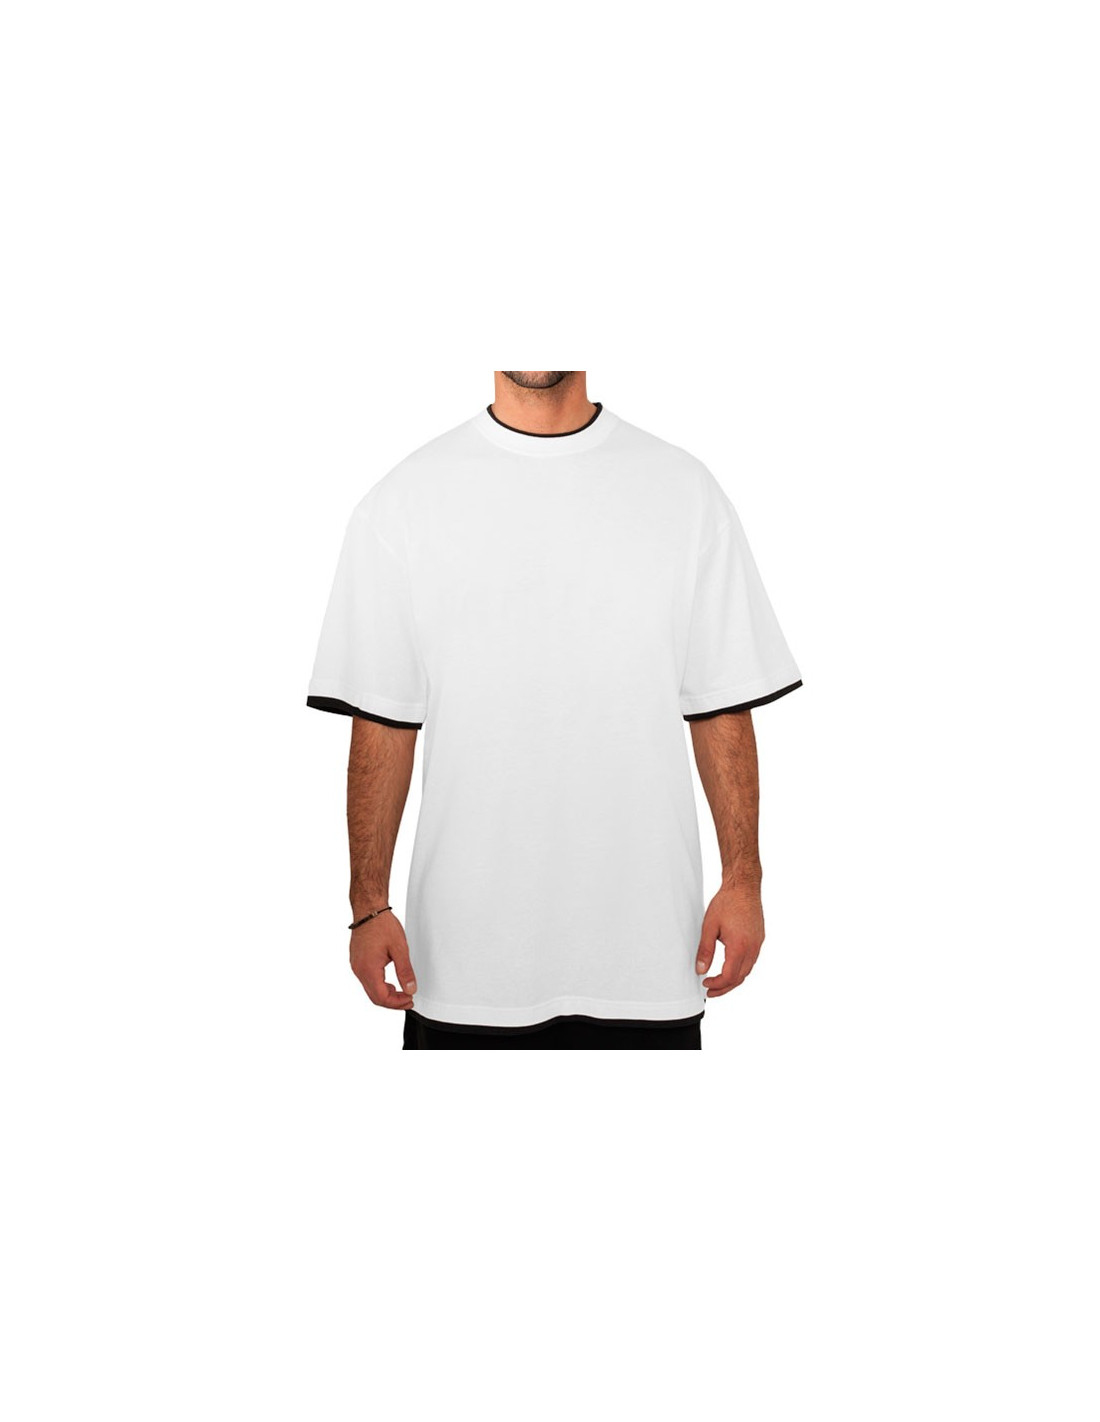 Urban 2 tone t shirt white black for Who makes the best white t shirts